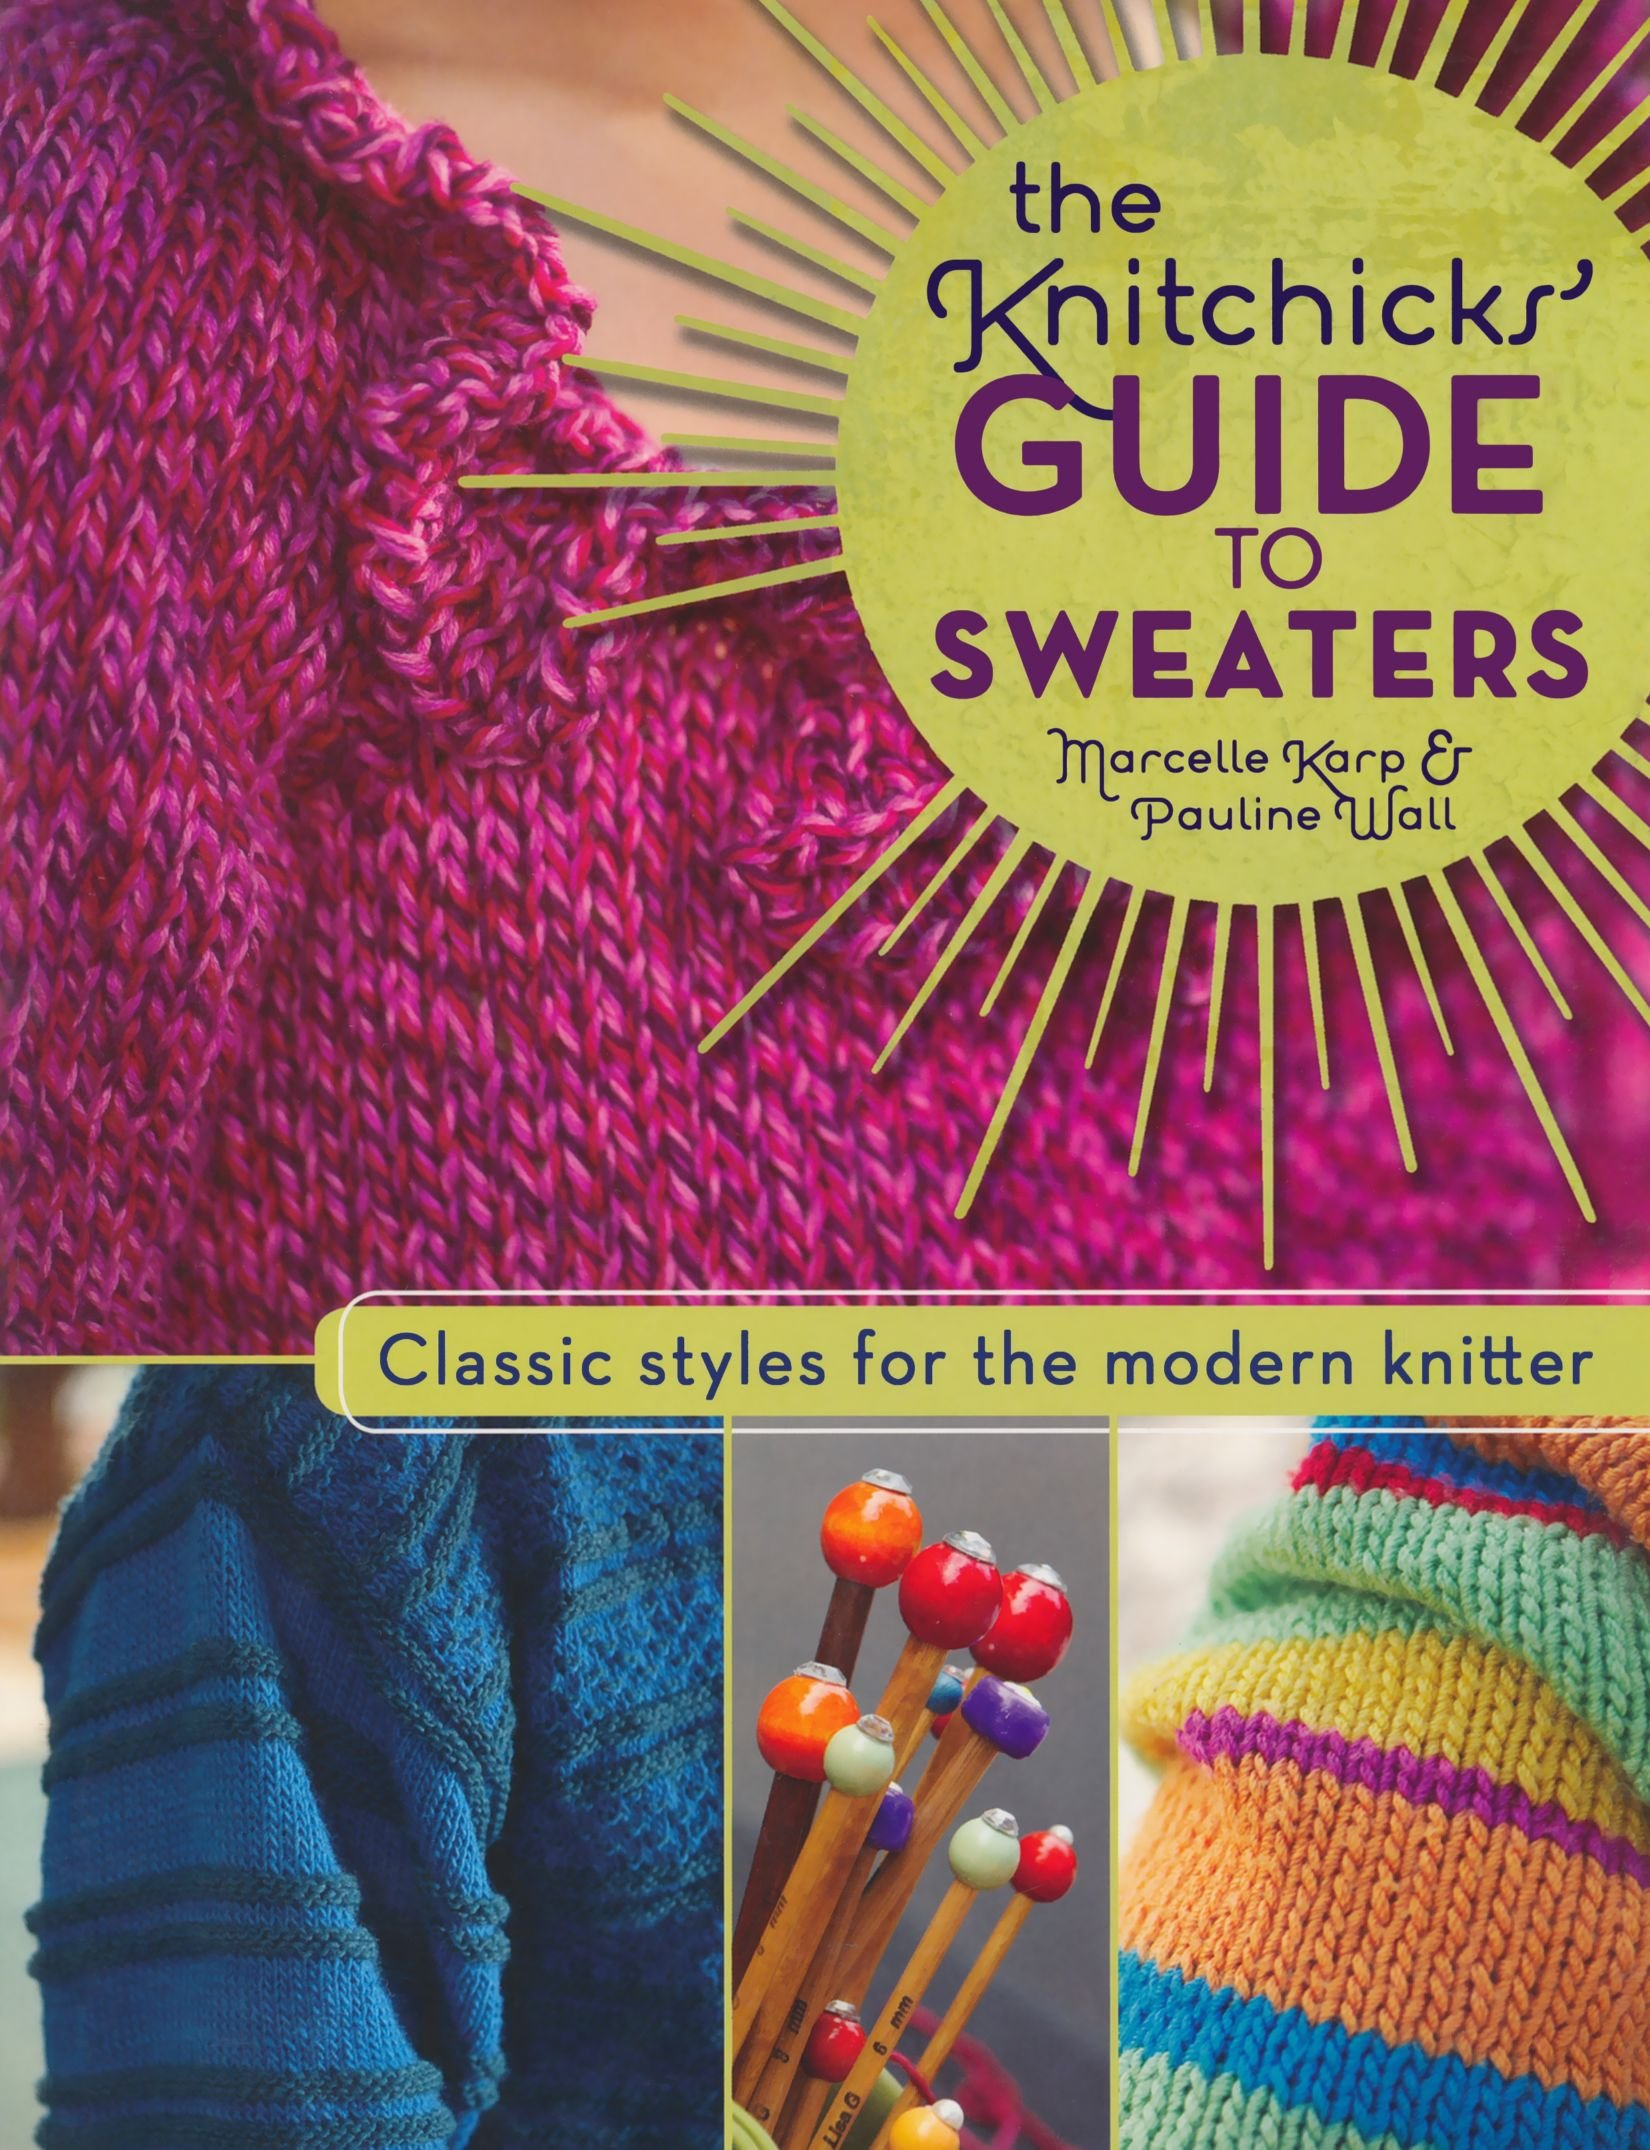 The Knitchick's Guide to Sweaters: Classic Styles for the Modern Knitter: Marcelle  Karp, Pauline Wall: 0035313644047: Amazon.com: Books